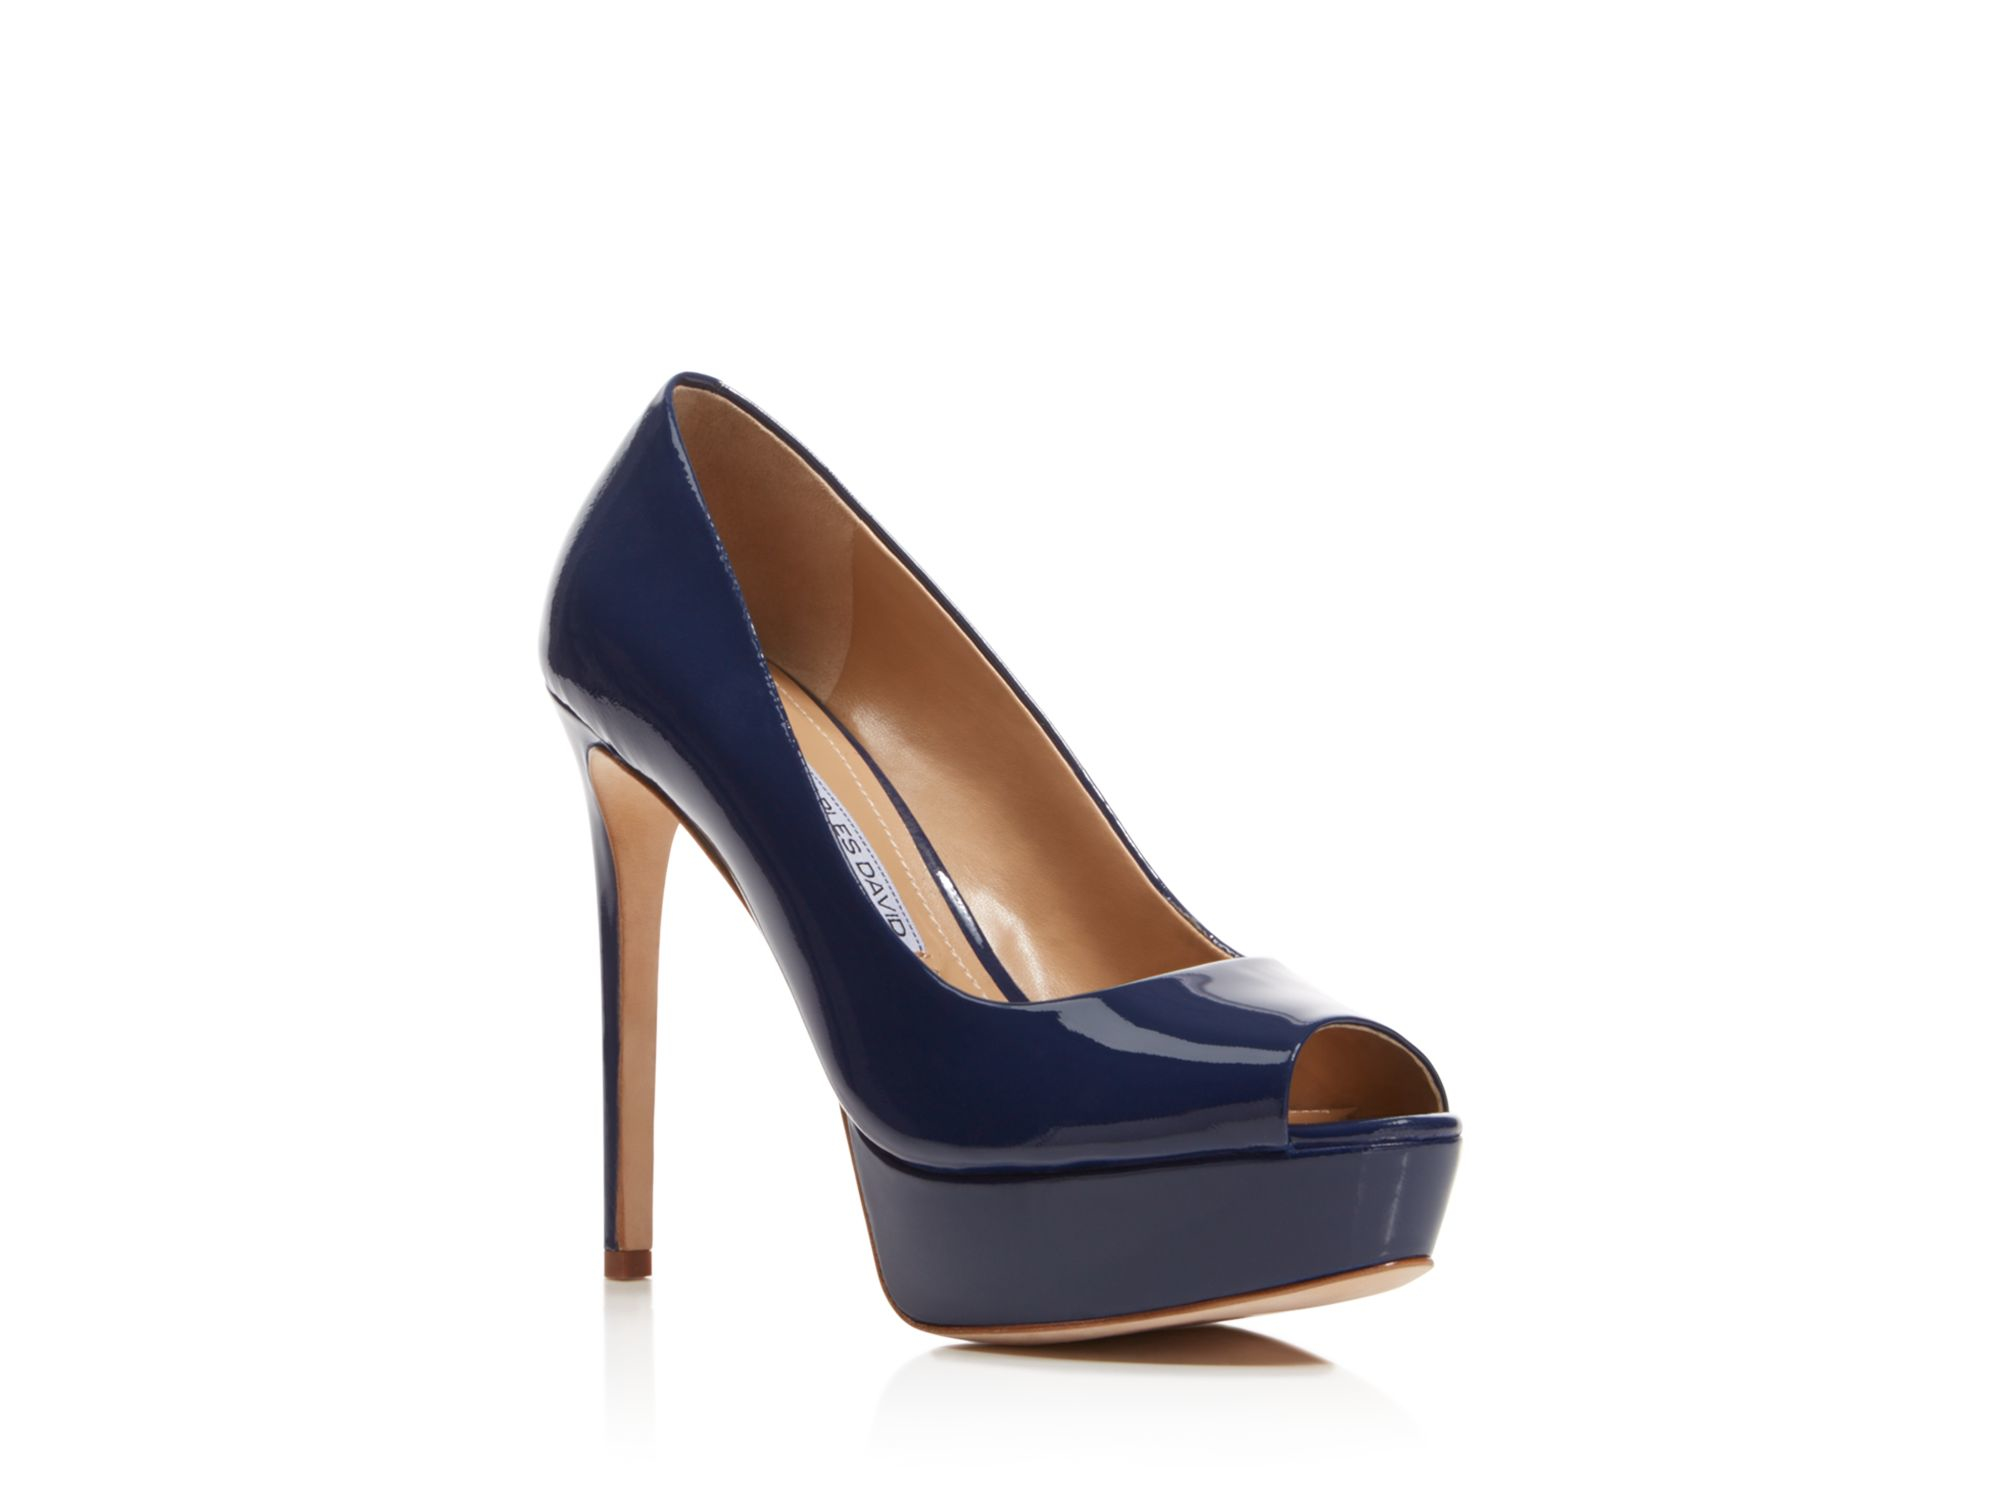 Navy Blue Peep Toe Shoes High Heels - Js Heel